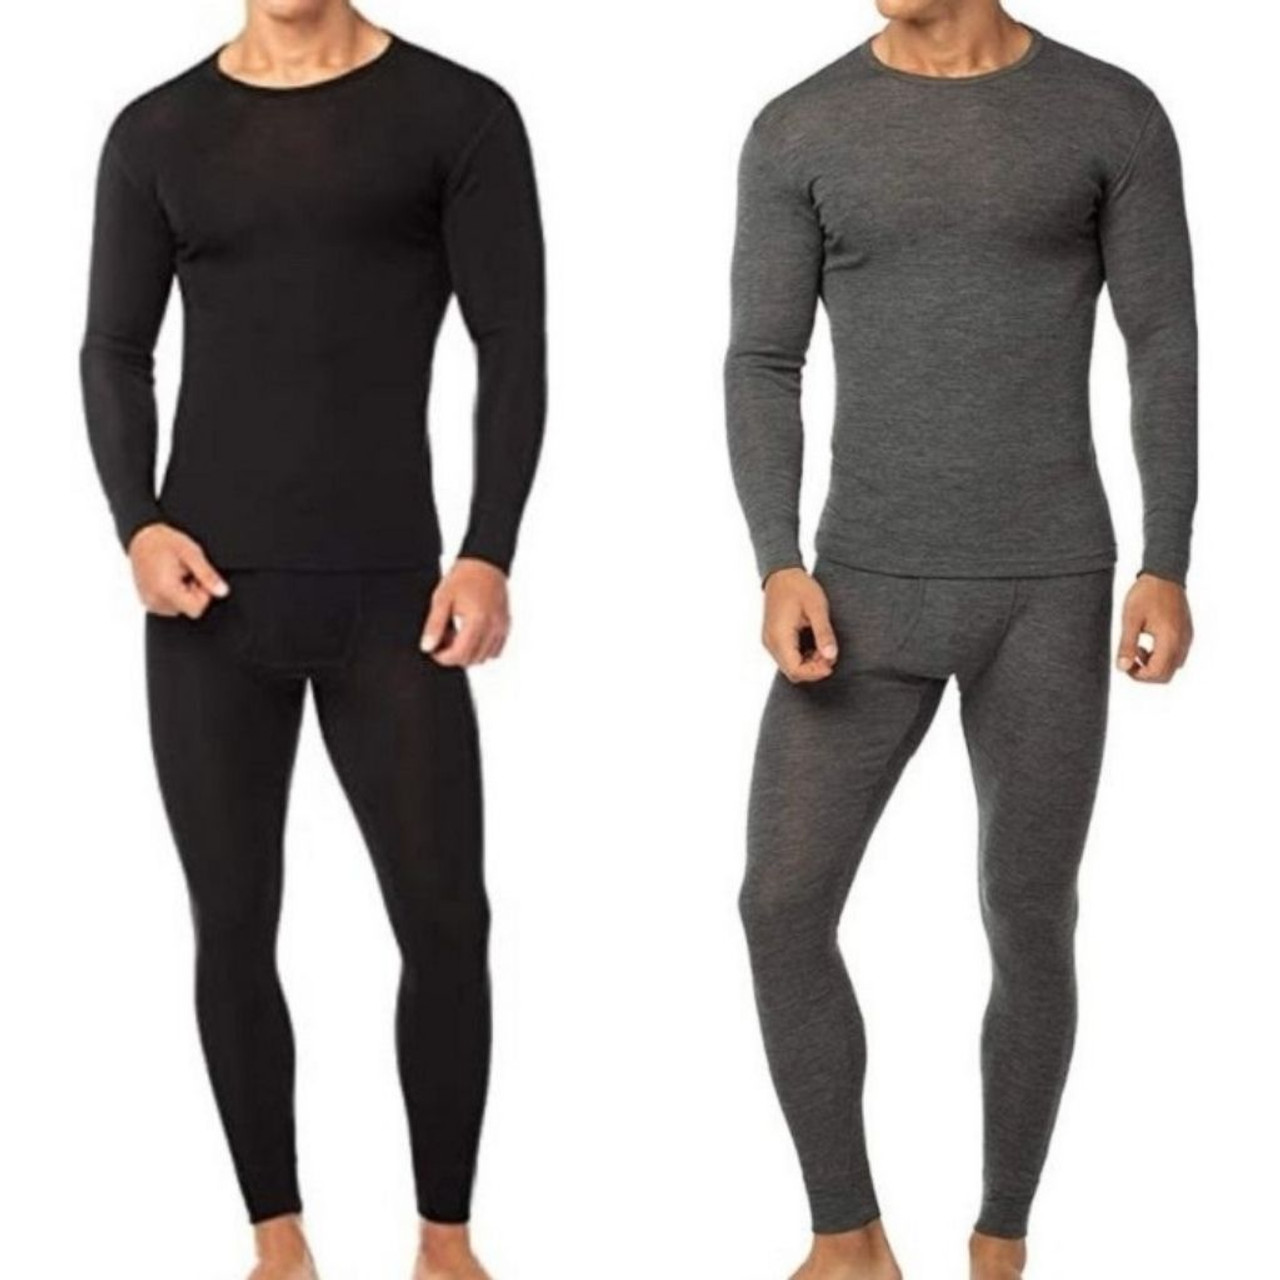 Men's Cotton Fleece Thermal Top and Pants Set (2-Pairs) $29.99 63% OFF